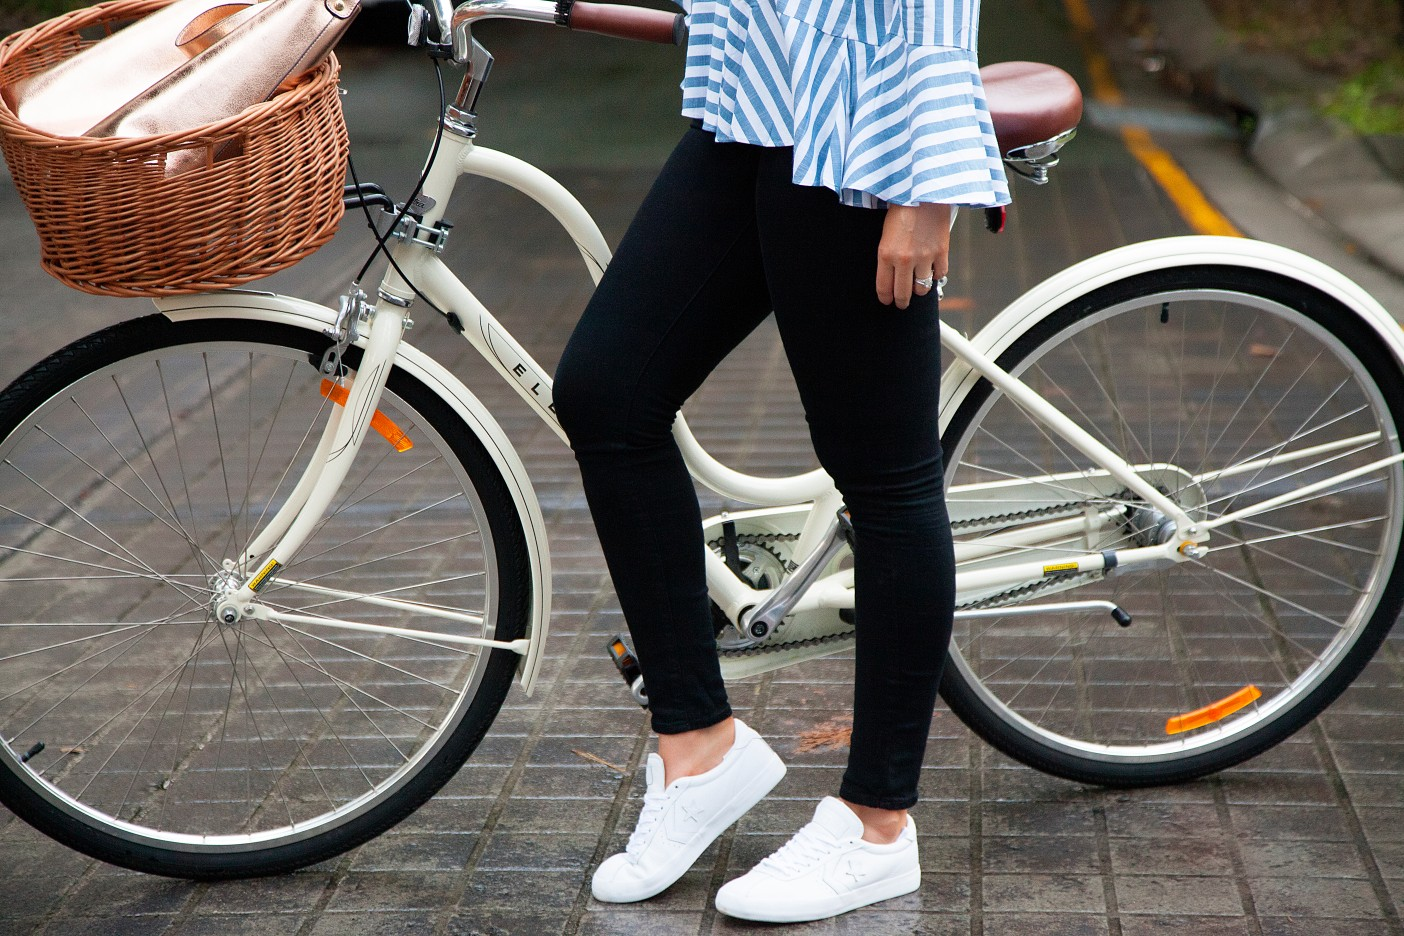 4 Stripe Top Black Jeans and White Converse Sneakers fashion blogger electra bike with basket rose gold tote handbag | One Striped Outfit, Two Ways featured by popular US fashion blogger, Style Elixir